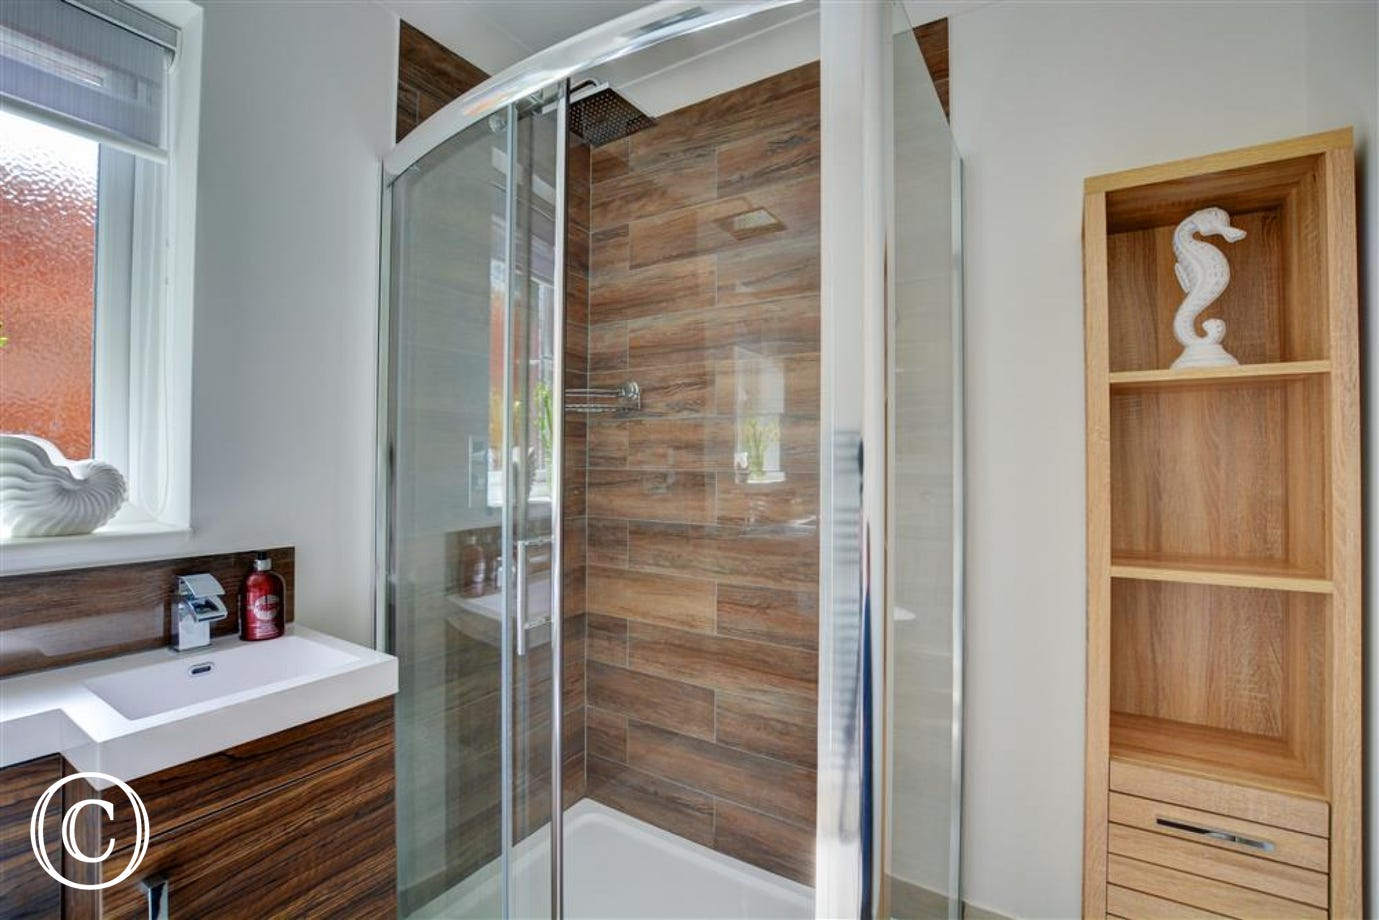 Lovely shower room